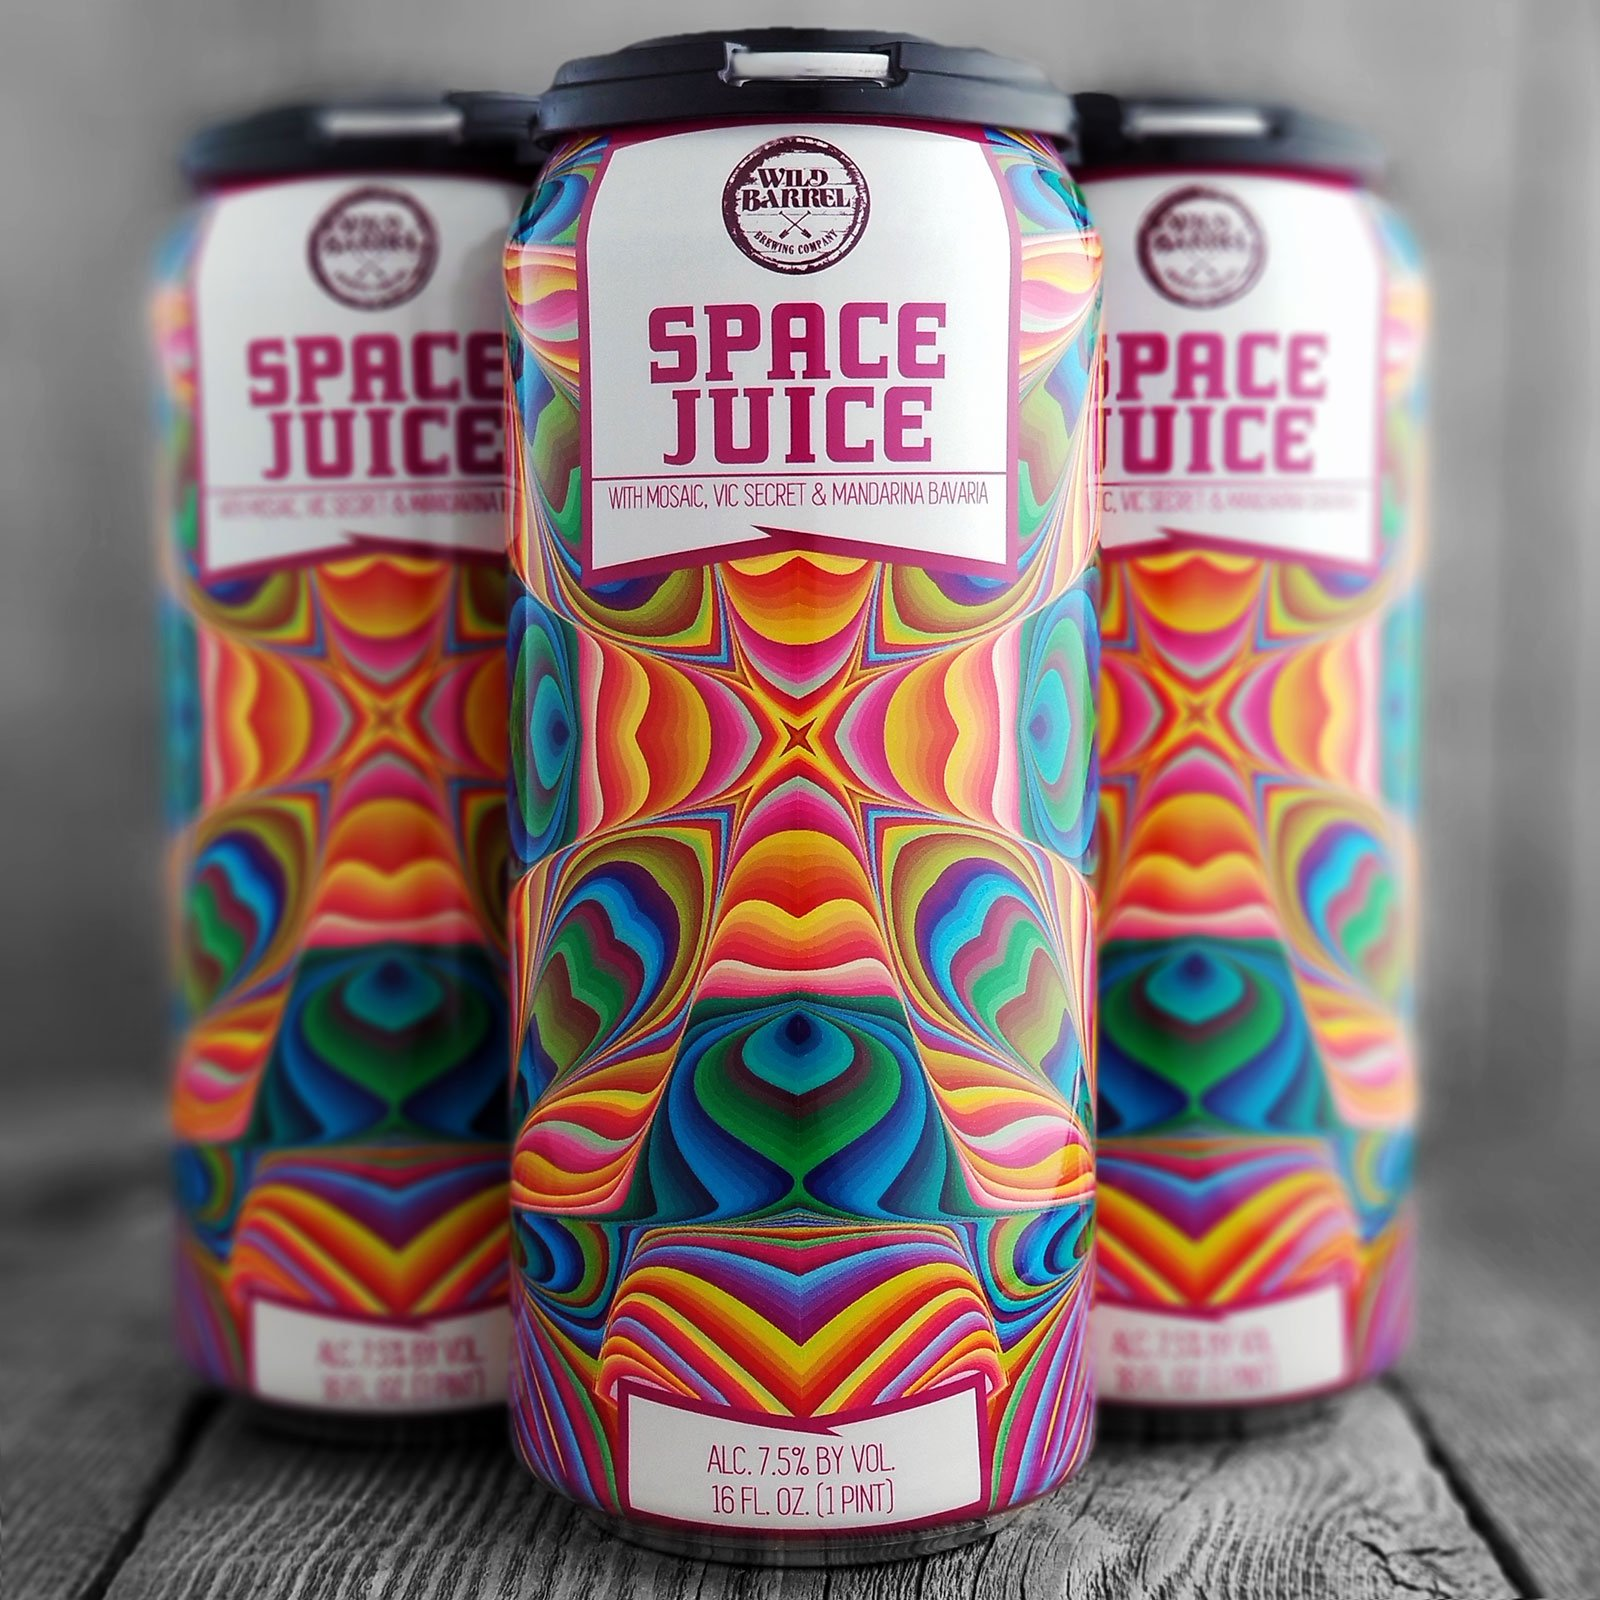 wild-barrel-space-juice-4pack-cans_2048x2048.jpg